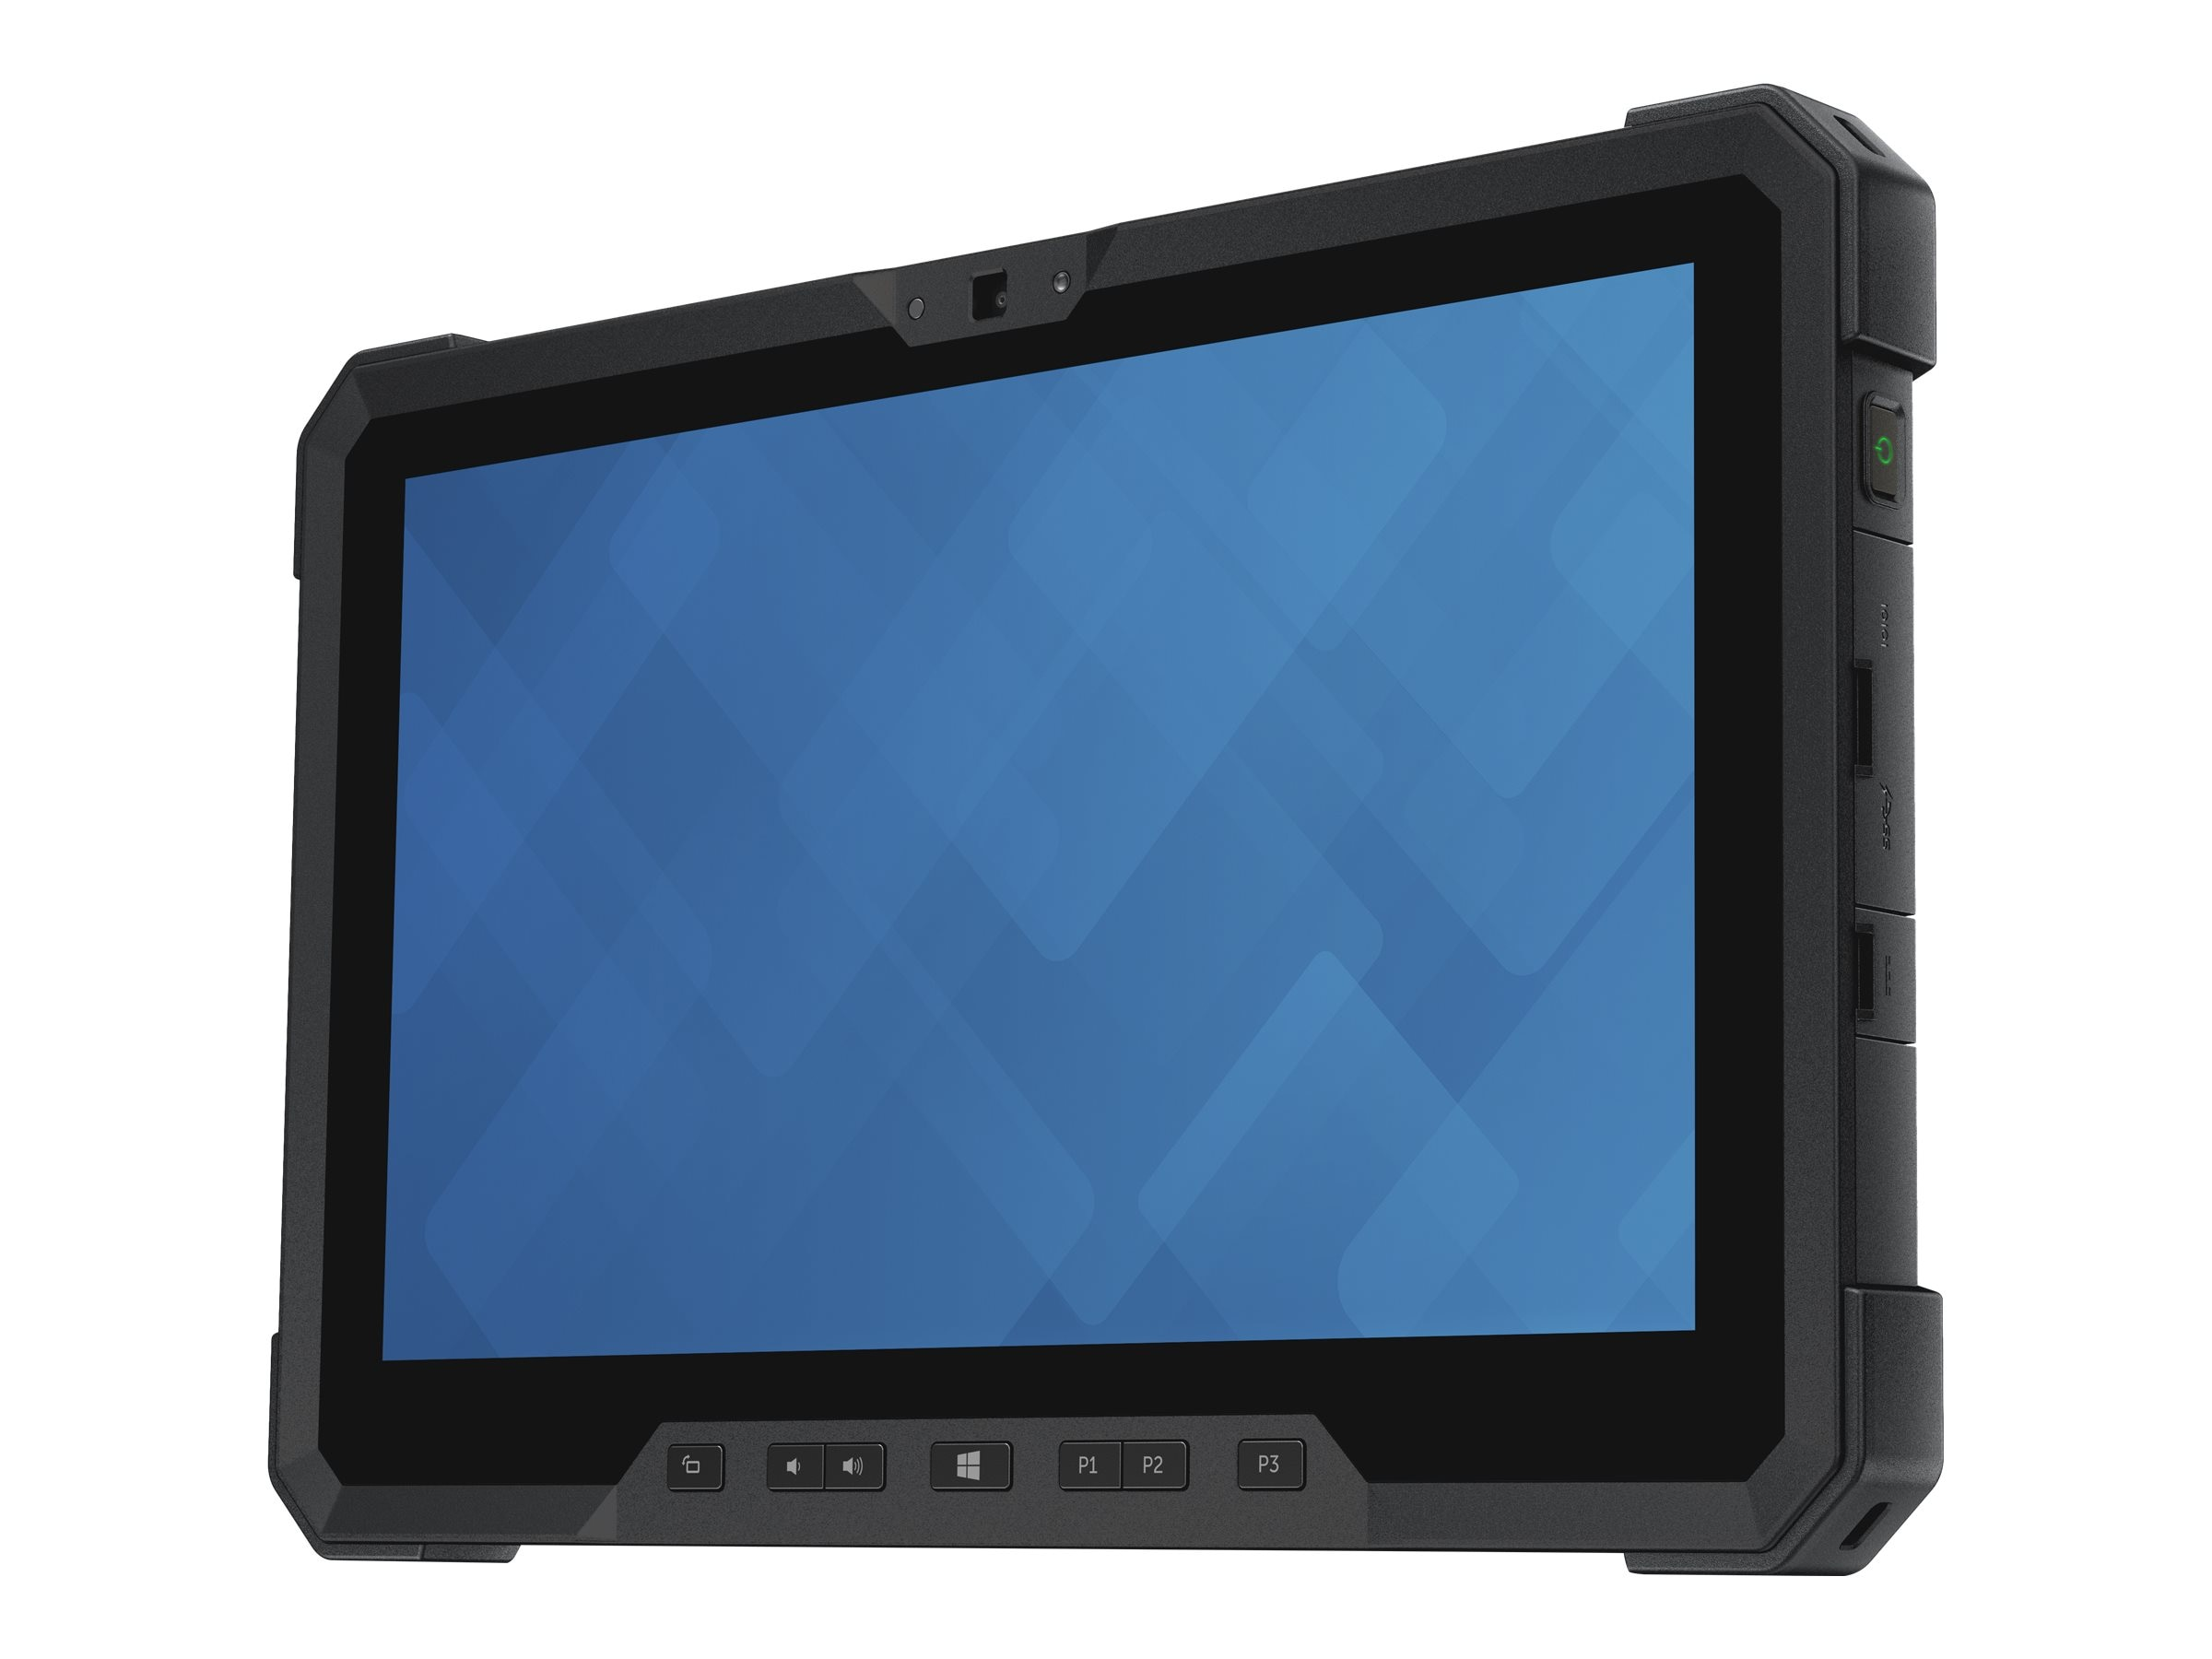 Dell Latitude Rugged Tablet 7202 1.2GHz processor Windows 7 Professional 64-bit, Windows 10 Pro, V7P79